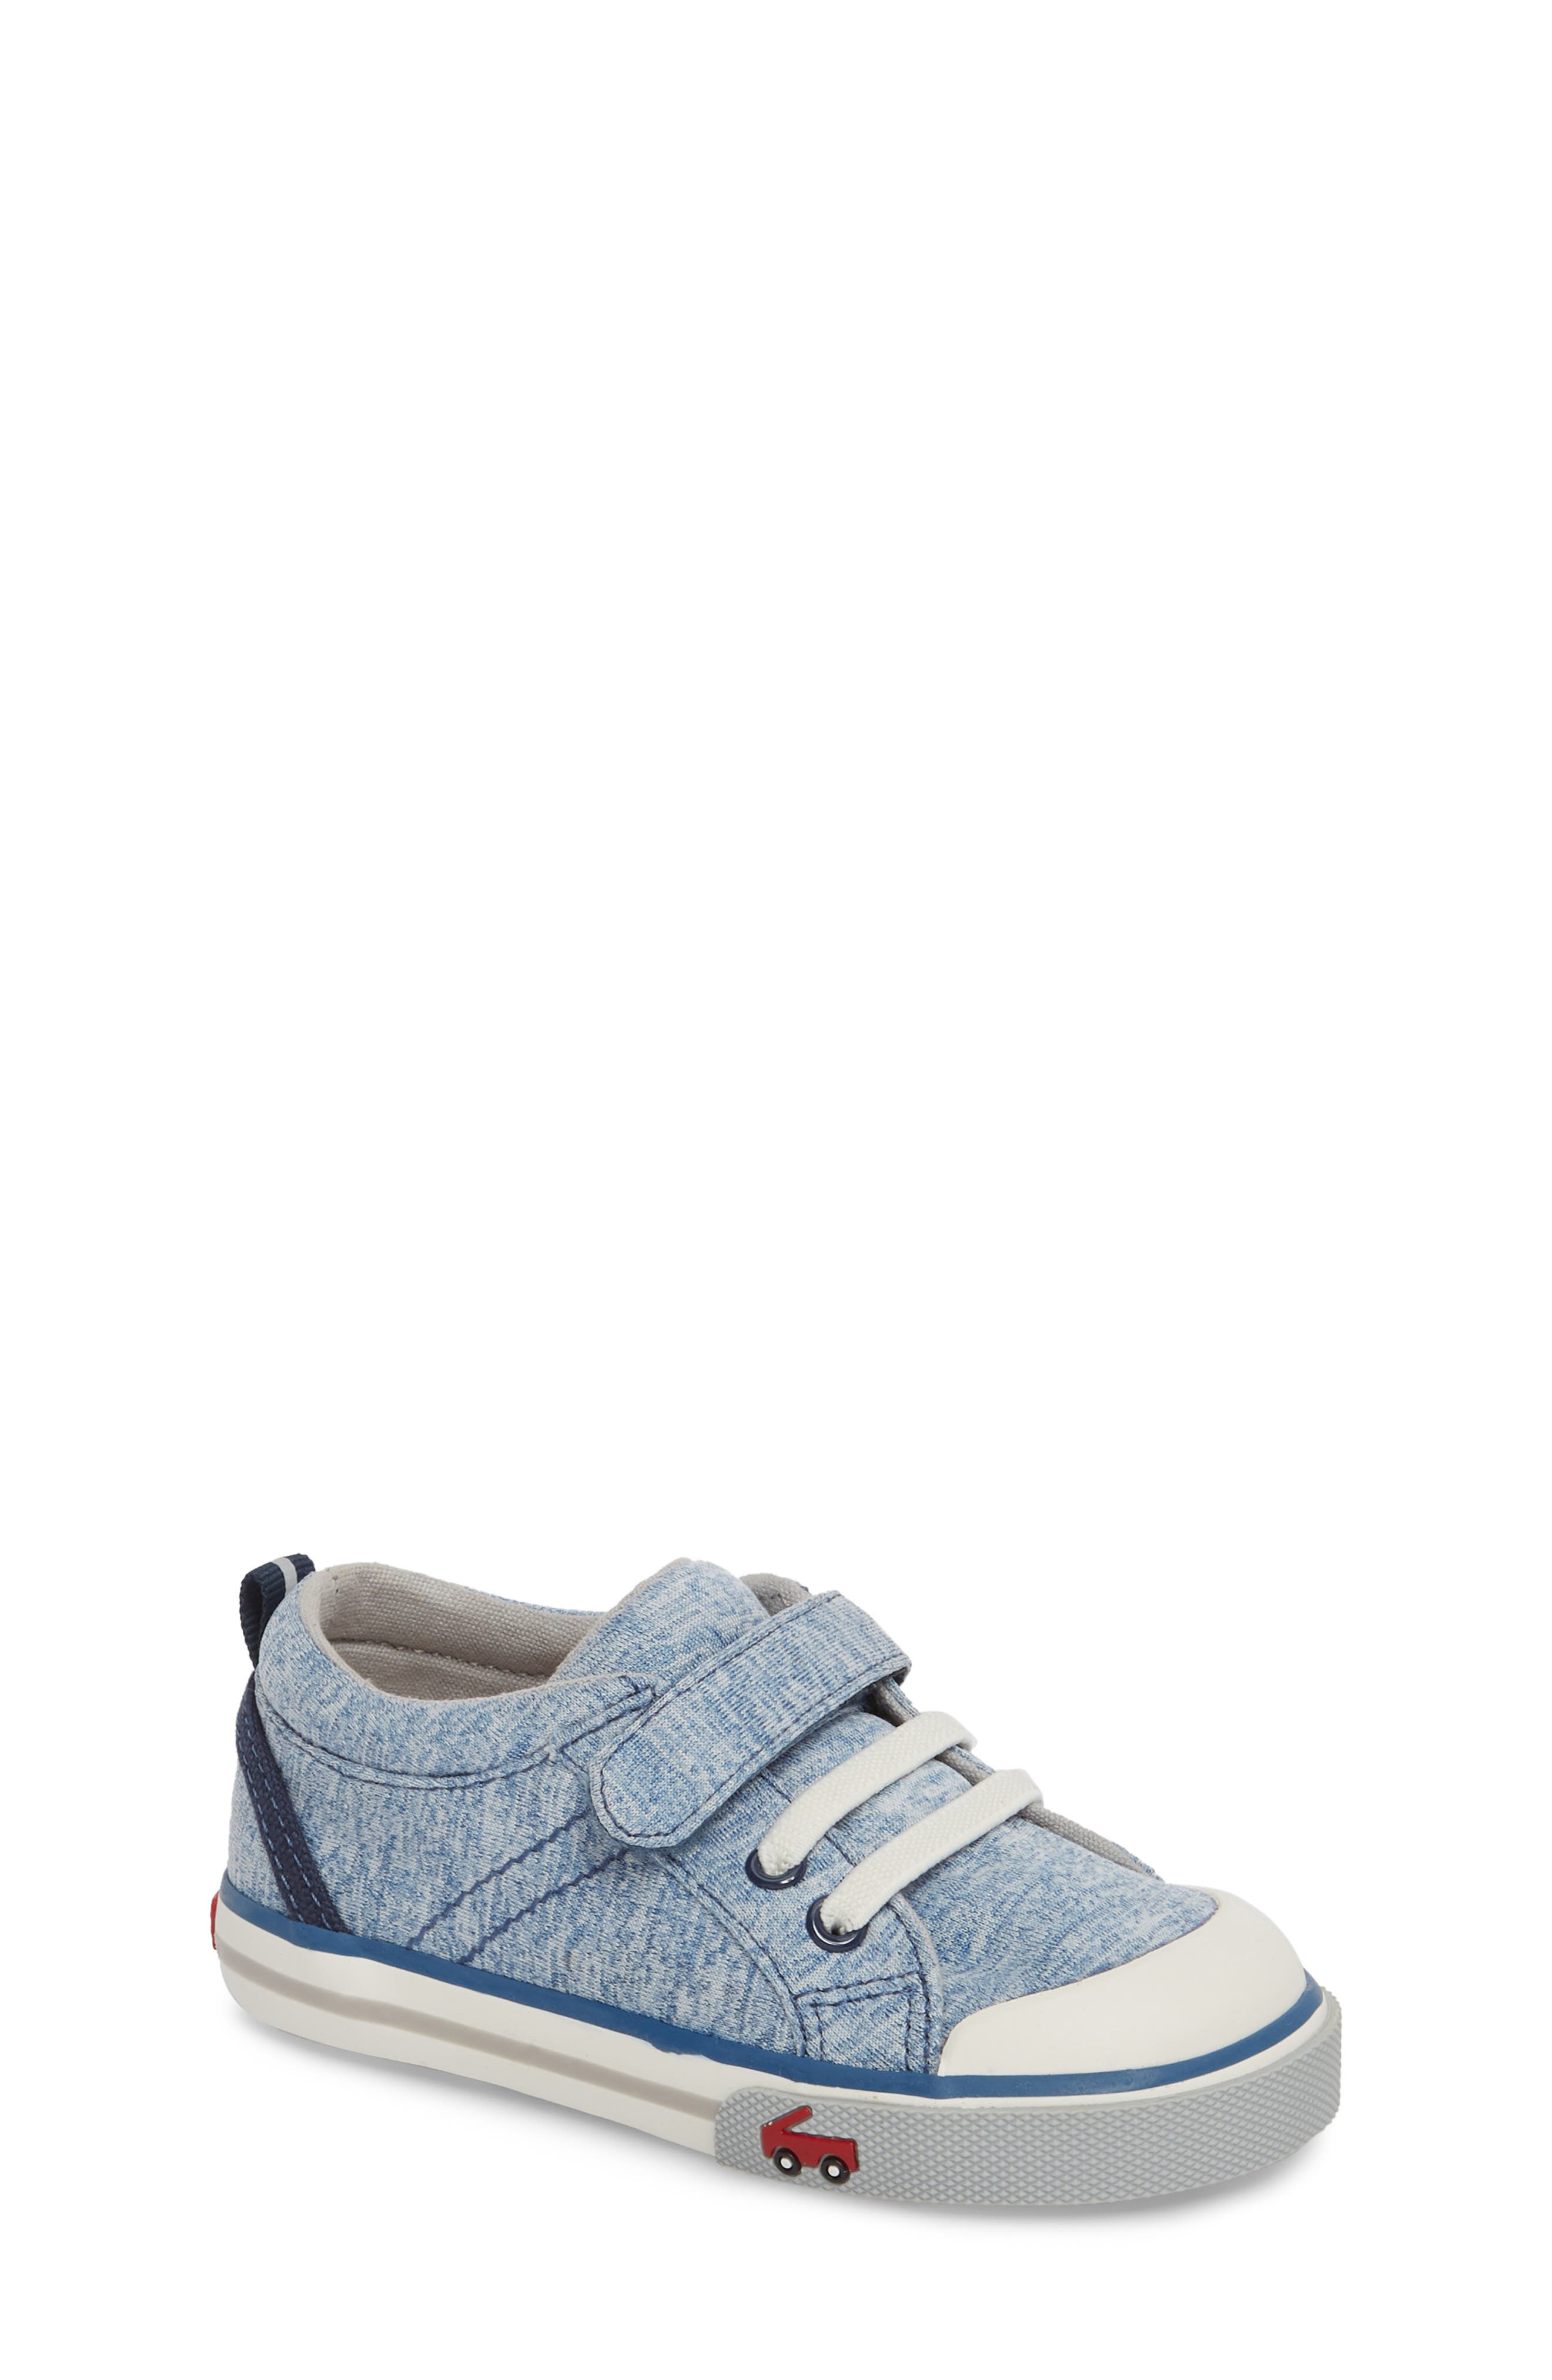 Tanner Sneaker,                             Main thumbnail 1, color,                             Blue Jersey